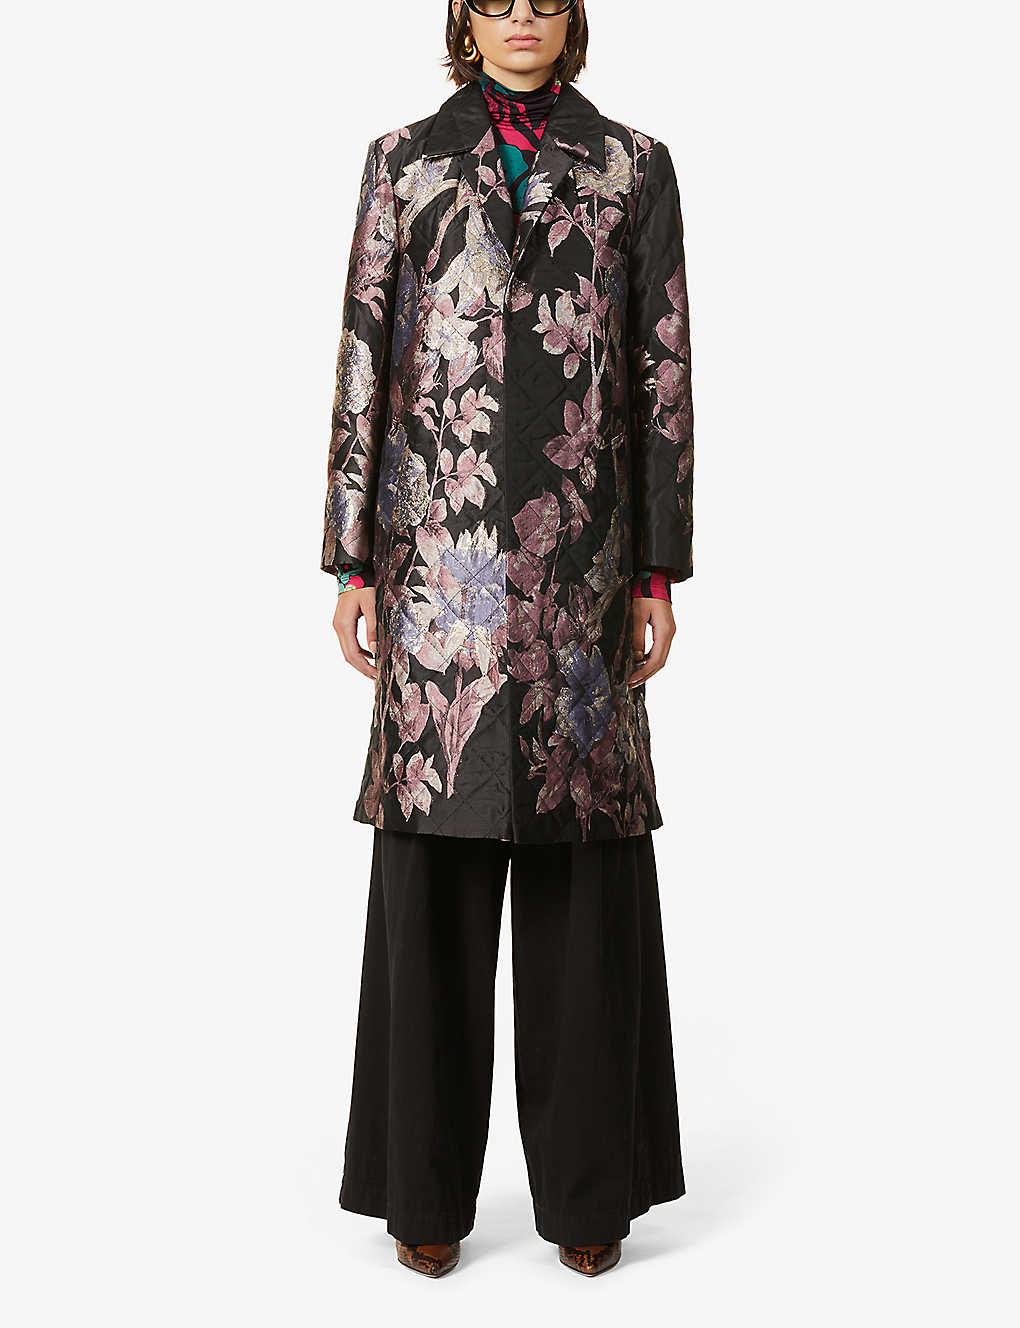 DRIES VAN NOTEN: Floral-pattern woven coat